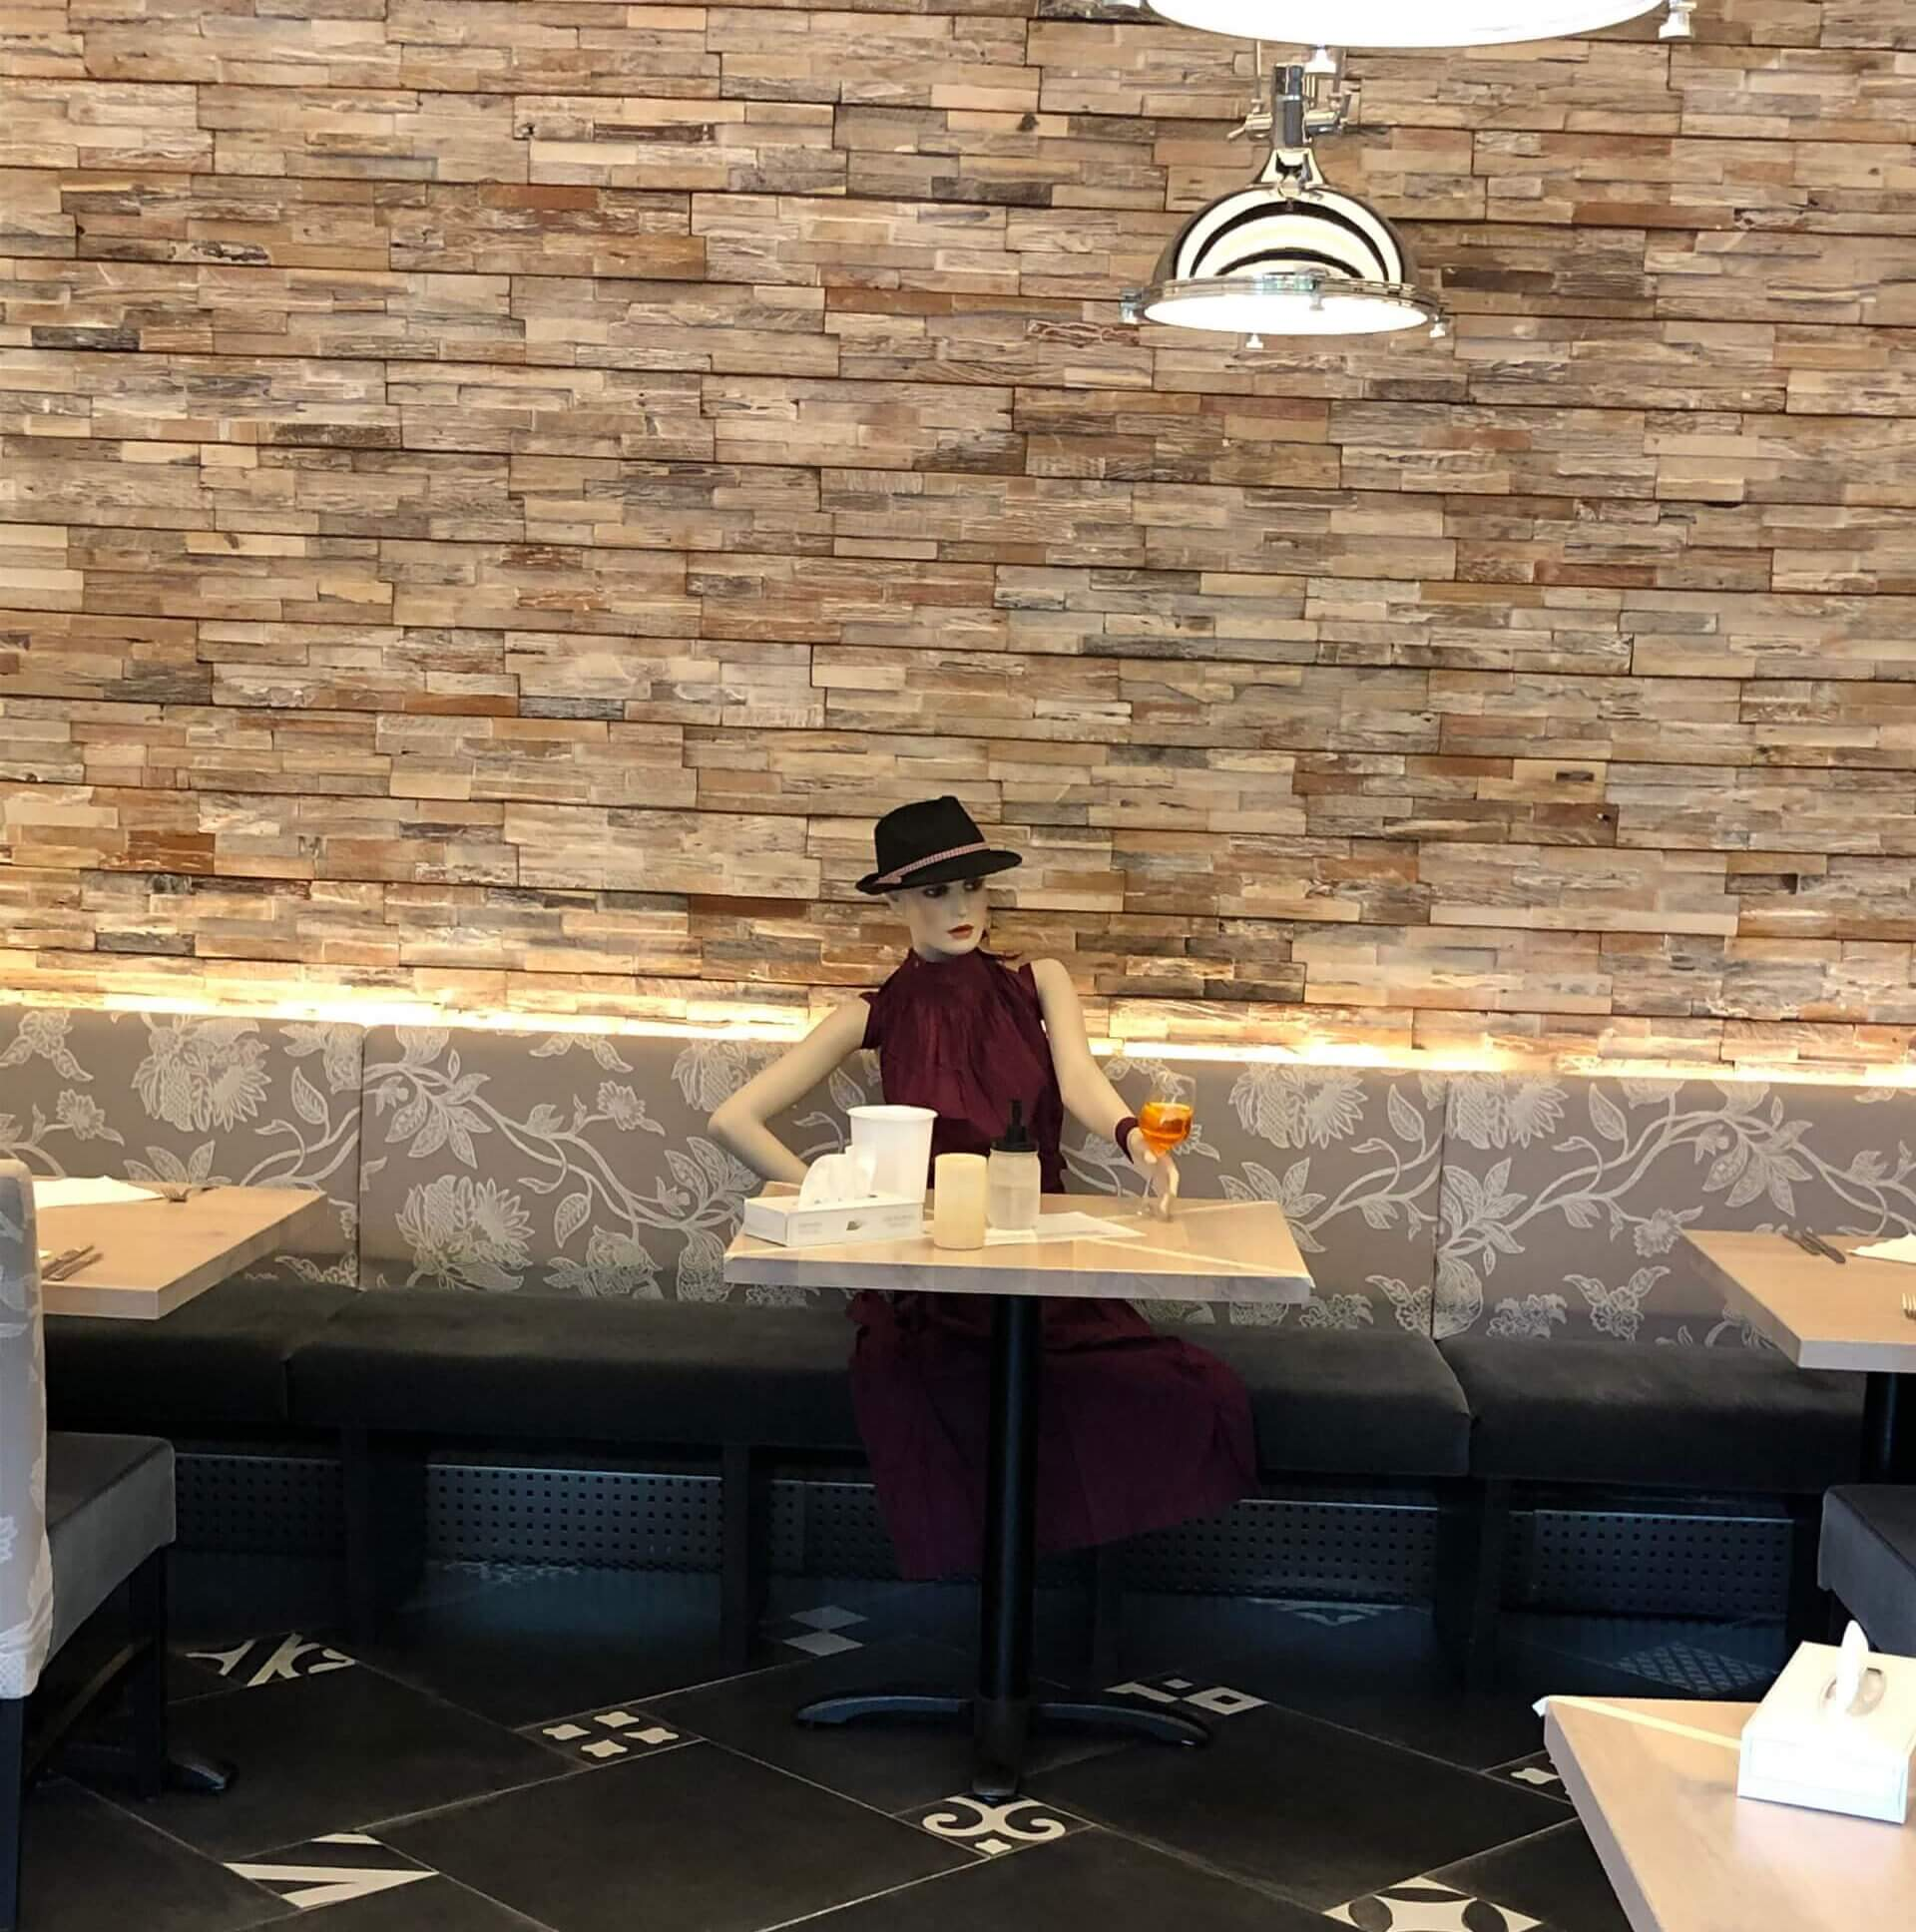 mannequin in a restaurant to keep distance during Corona Virus